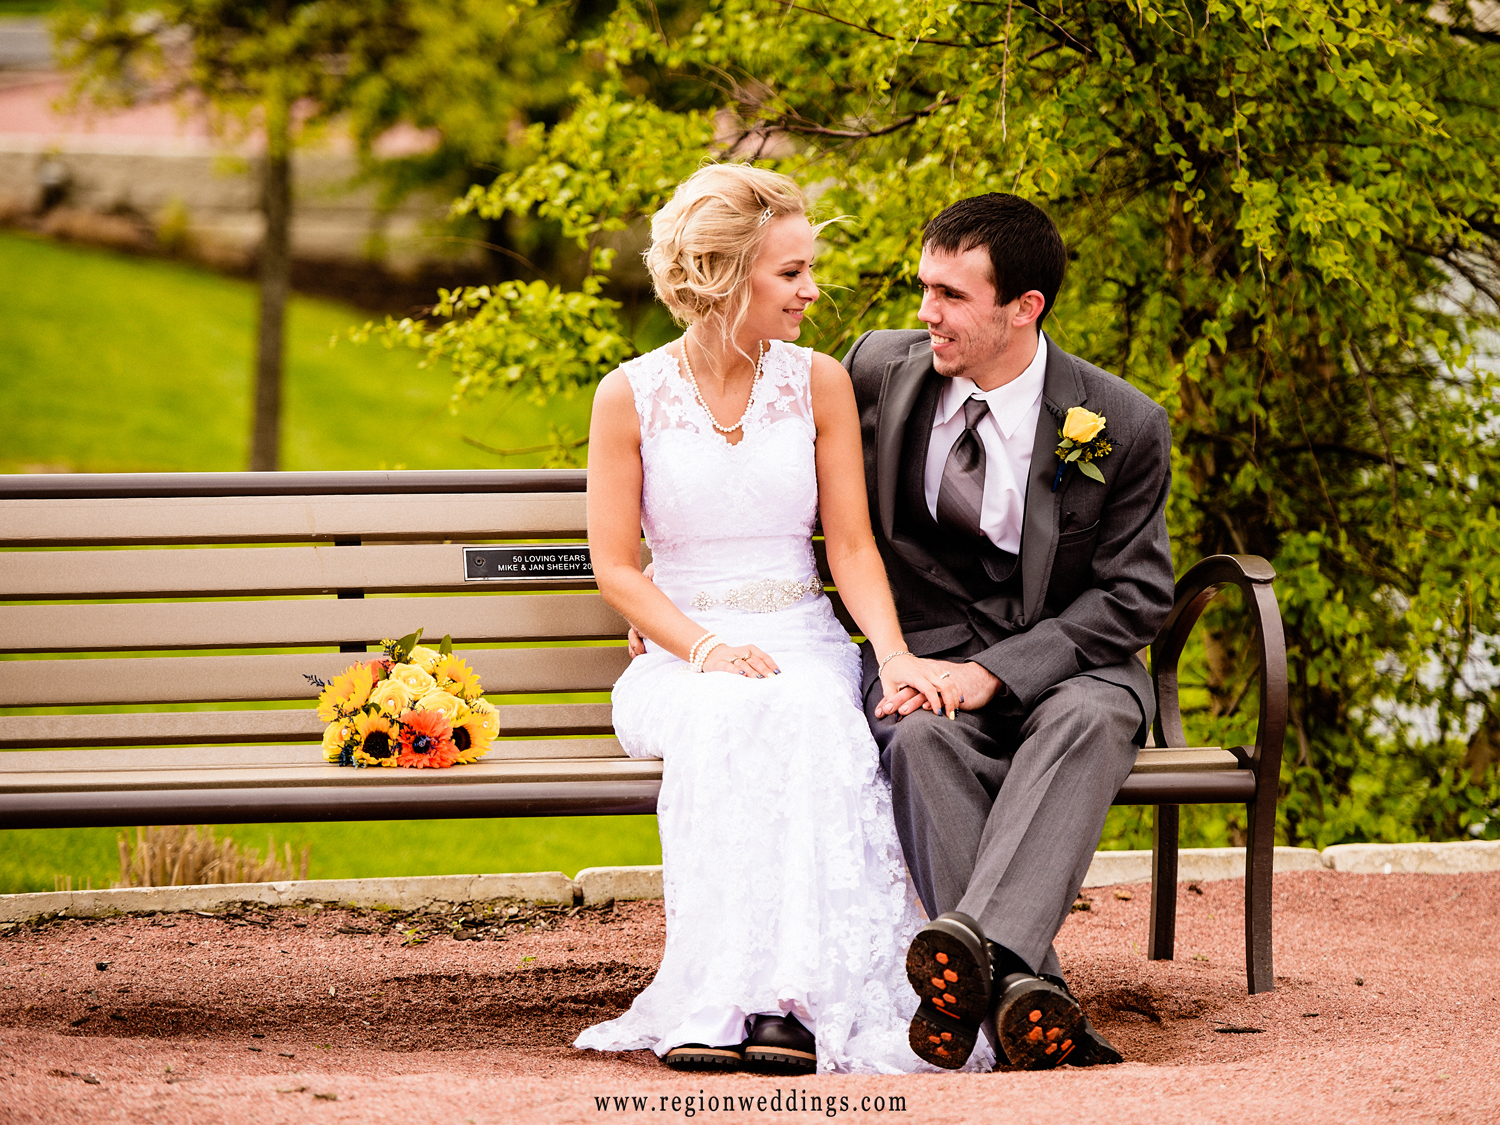 Newlyweds cuddle up on a bench at Centennial Park in Munster, Indiana